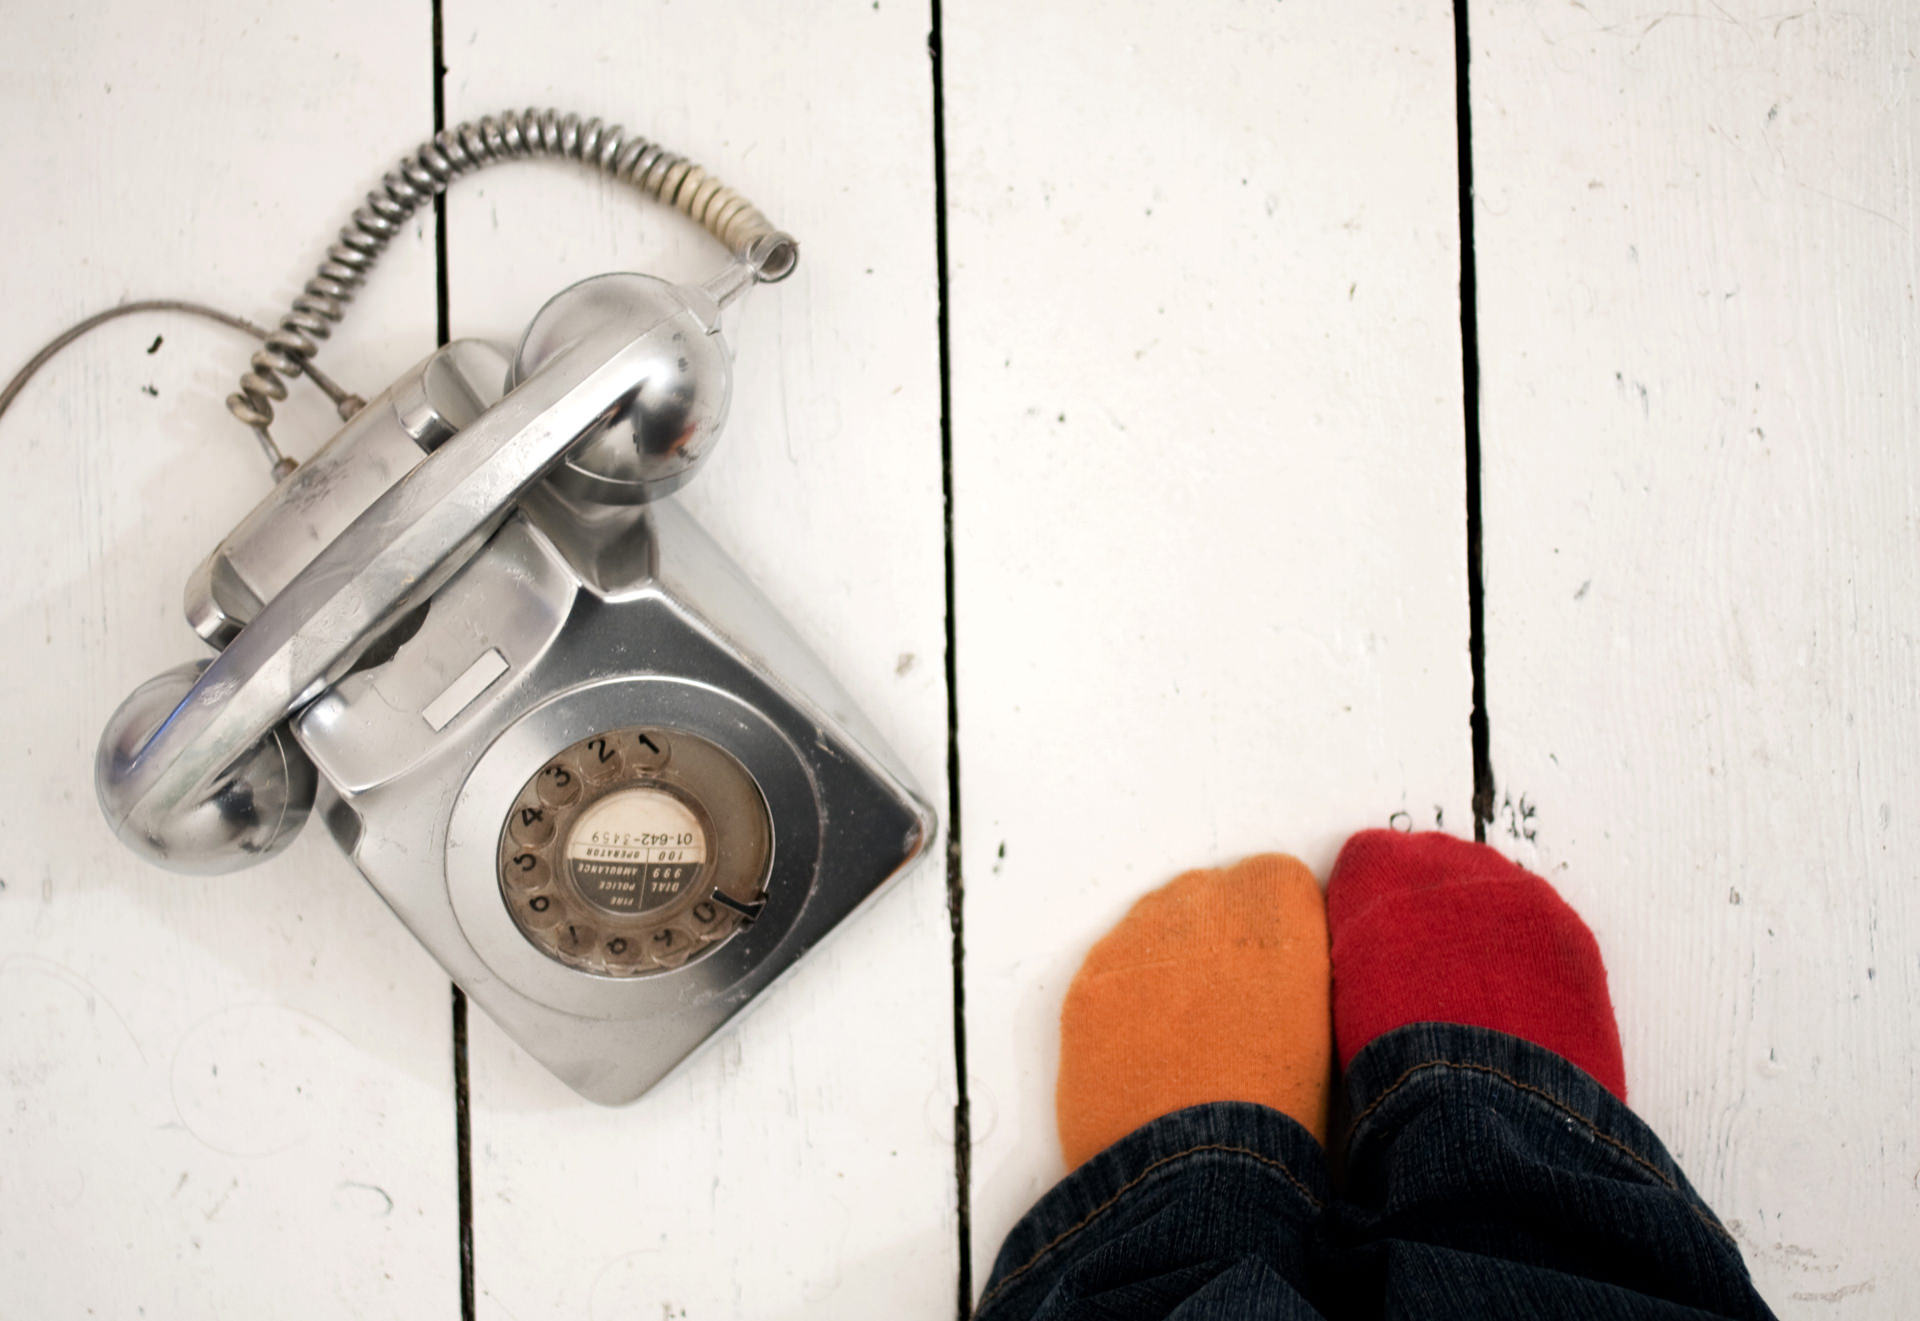 a silver phone next to orange and red socks - waiting a call picture by Laura Moreno